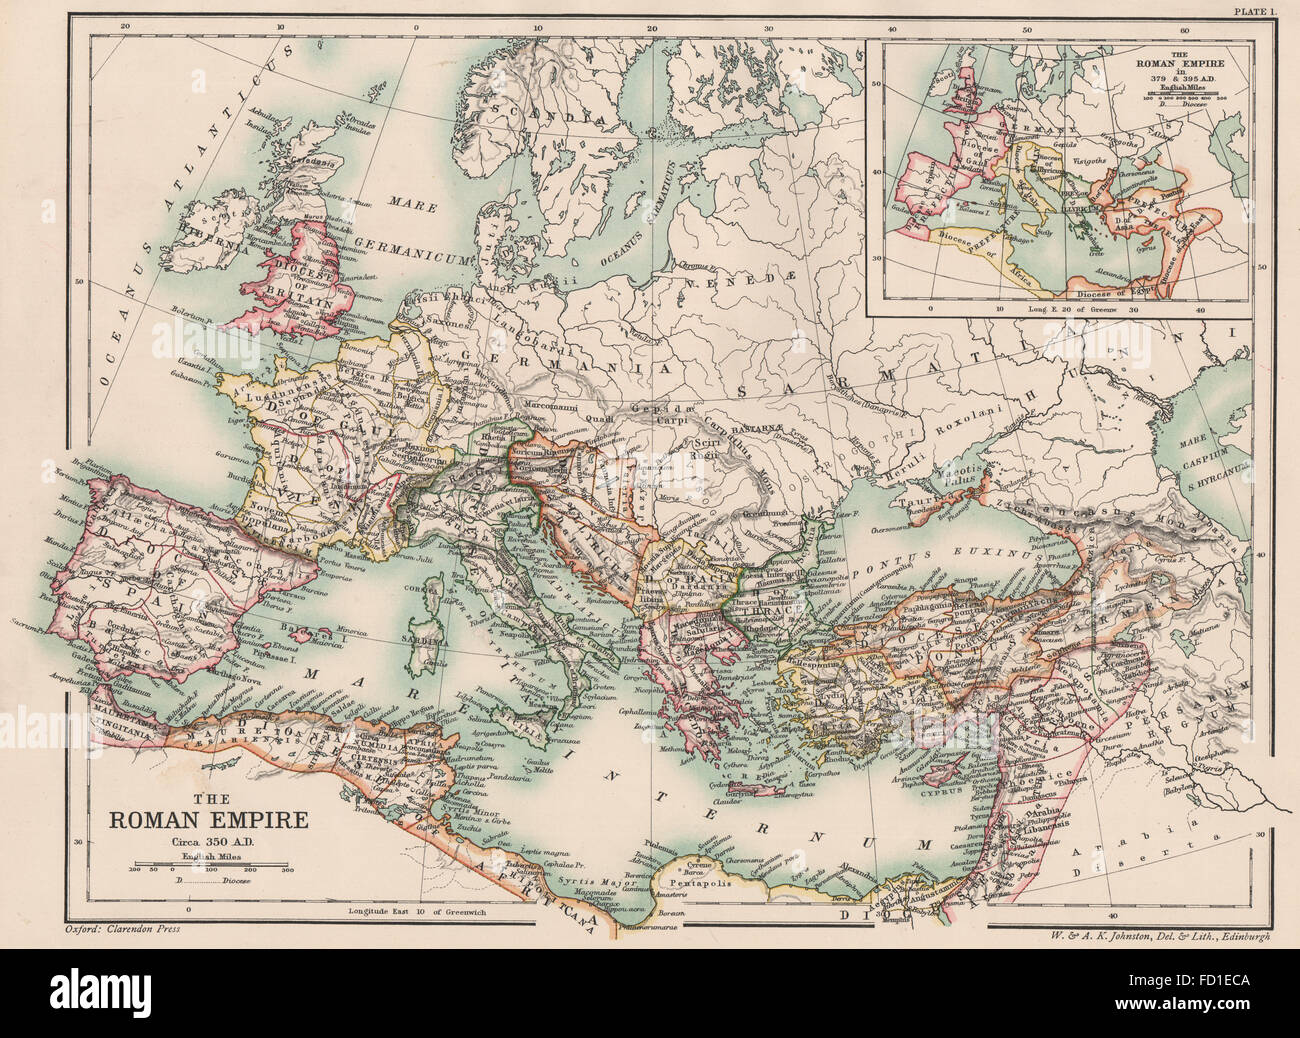 Late Roman Empire Map.Late Roman Empire 350 Ad Inset In 379 395 Ad 4th Century 1902